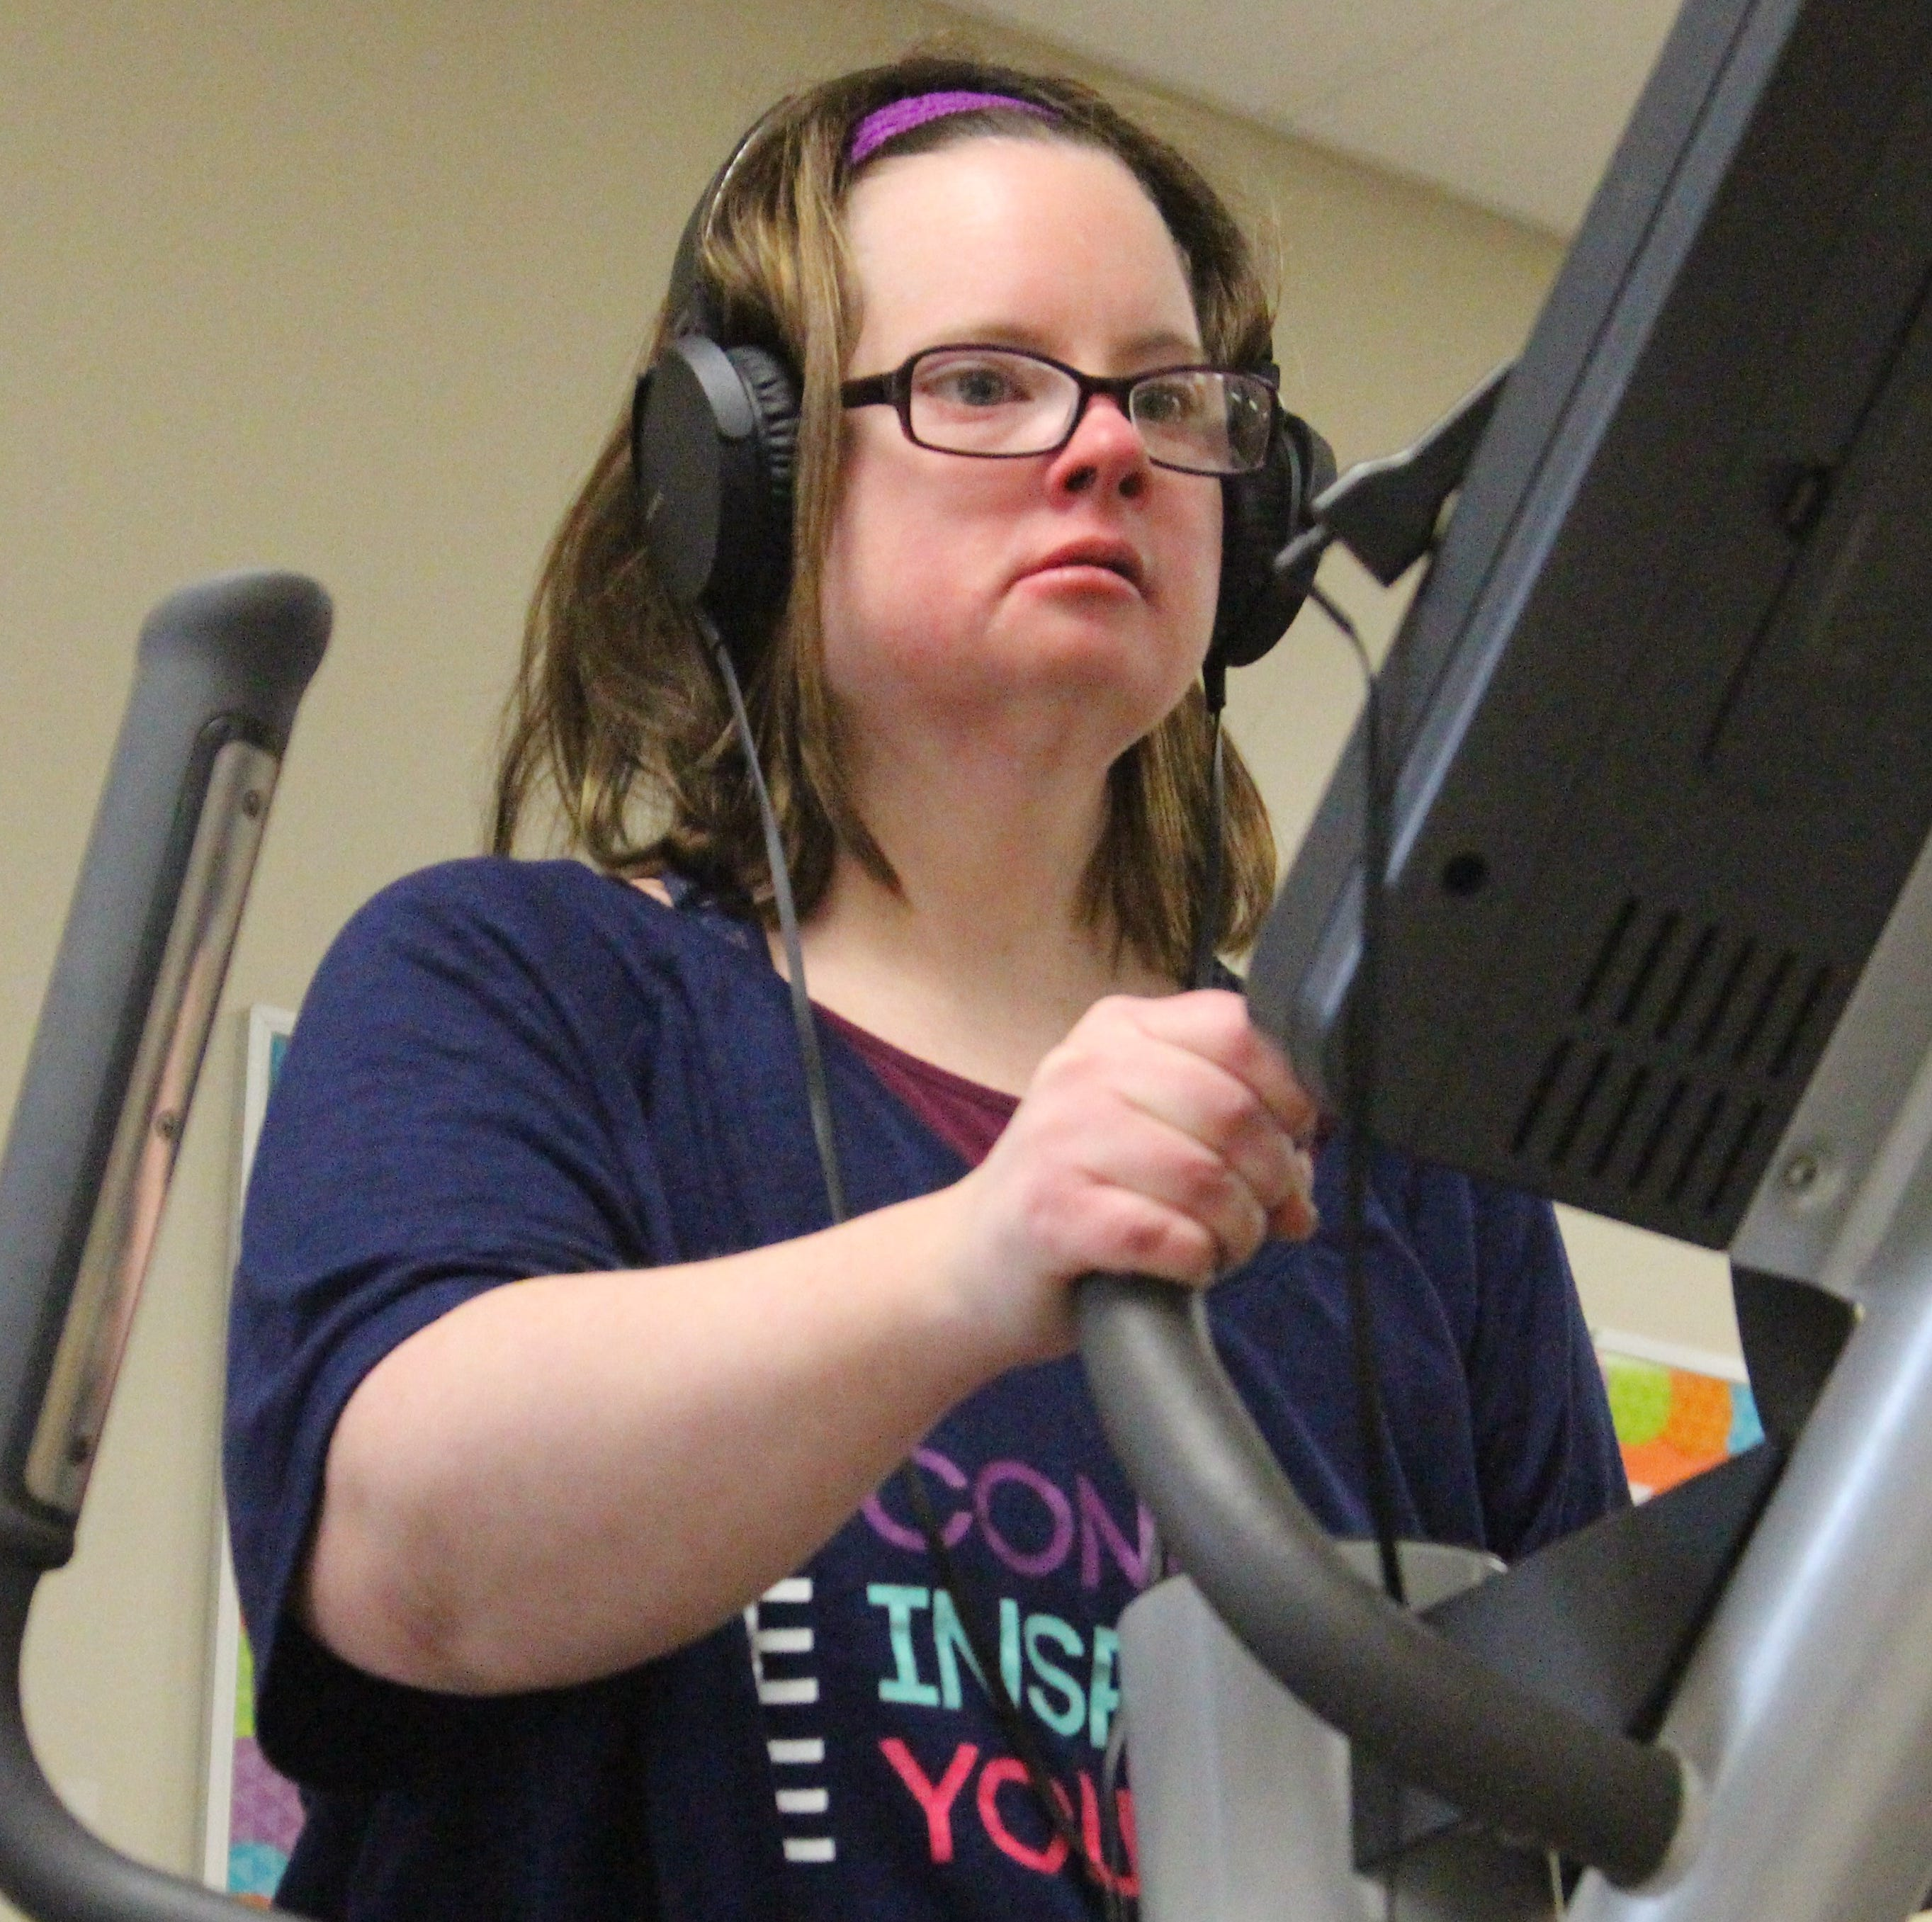 Family, community help Marion woman achieve life-changing weight loss